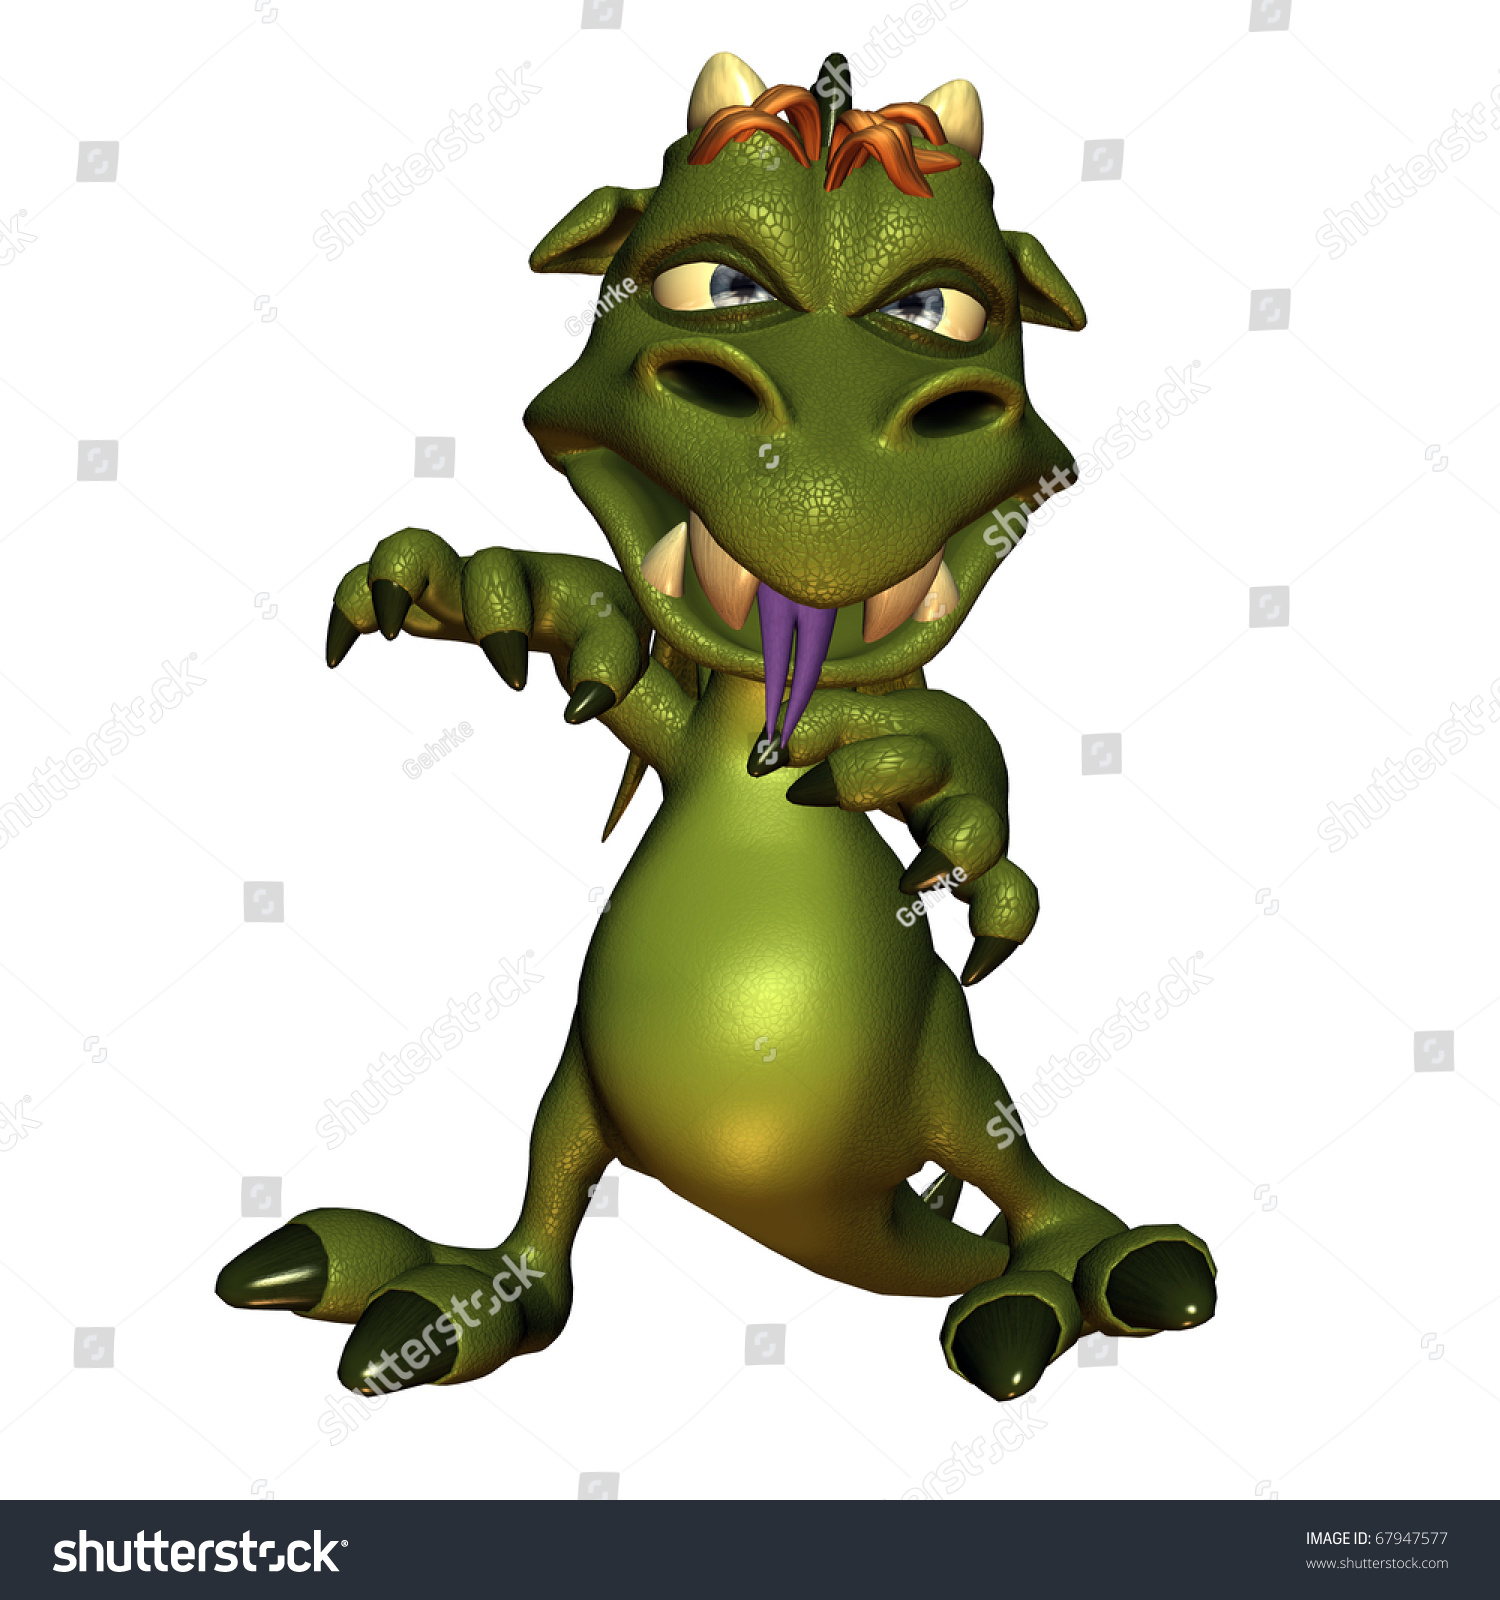 3d Rendering Of A Little Evil Dragon In A Comic Style Illustration - 67947577 : Shutterstock